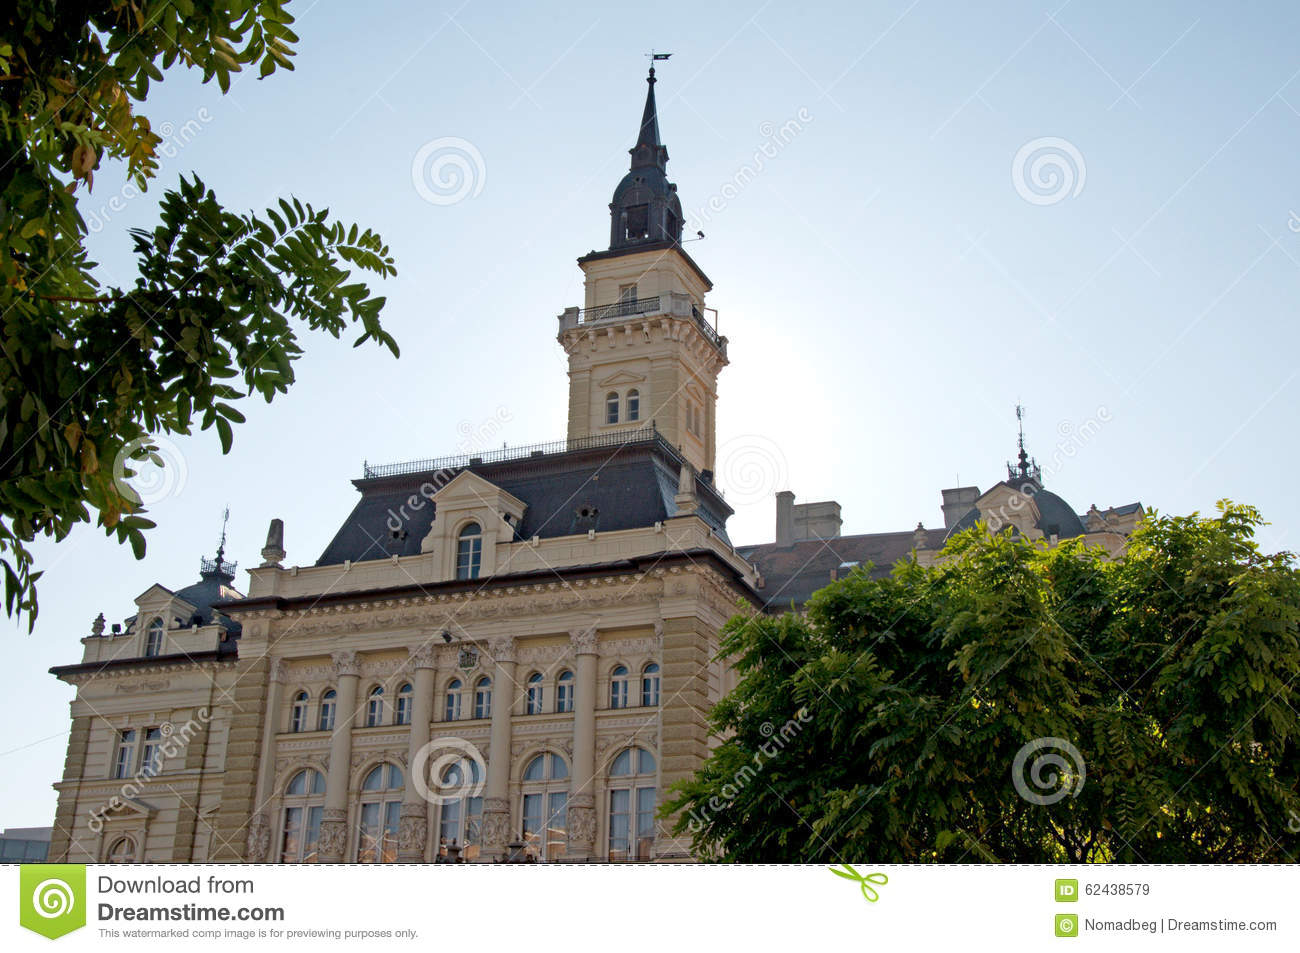 Monumental and representative palace of Romanticism